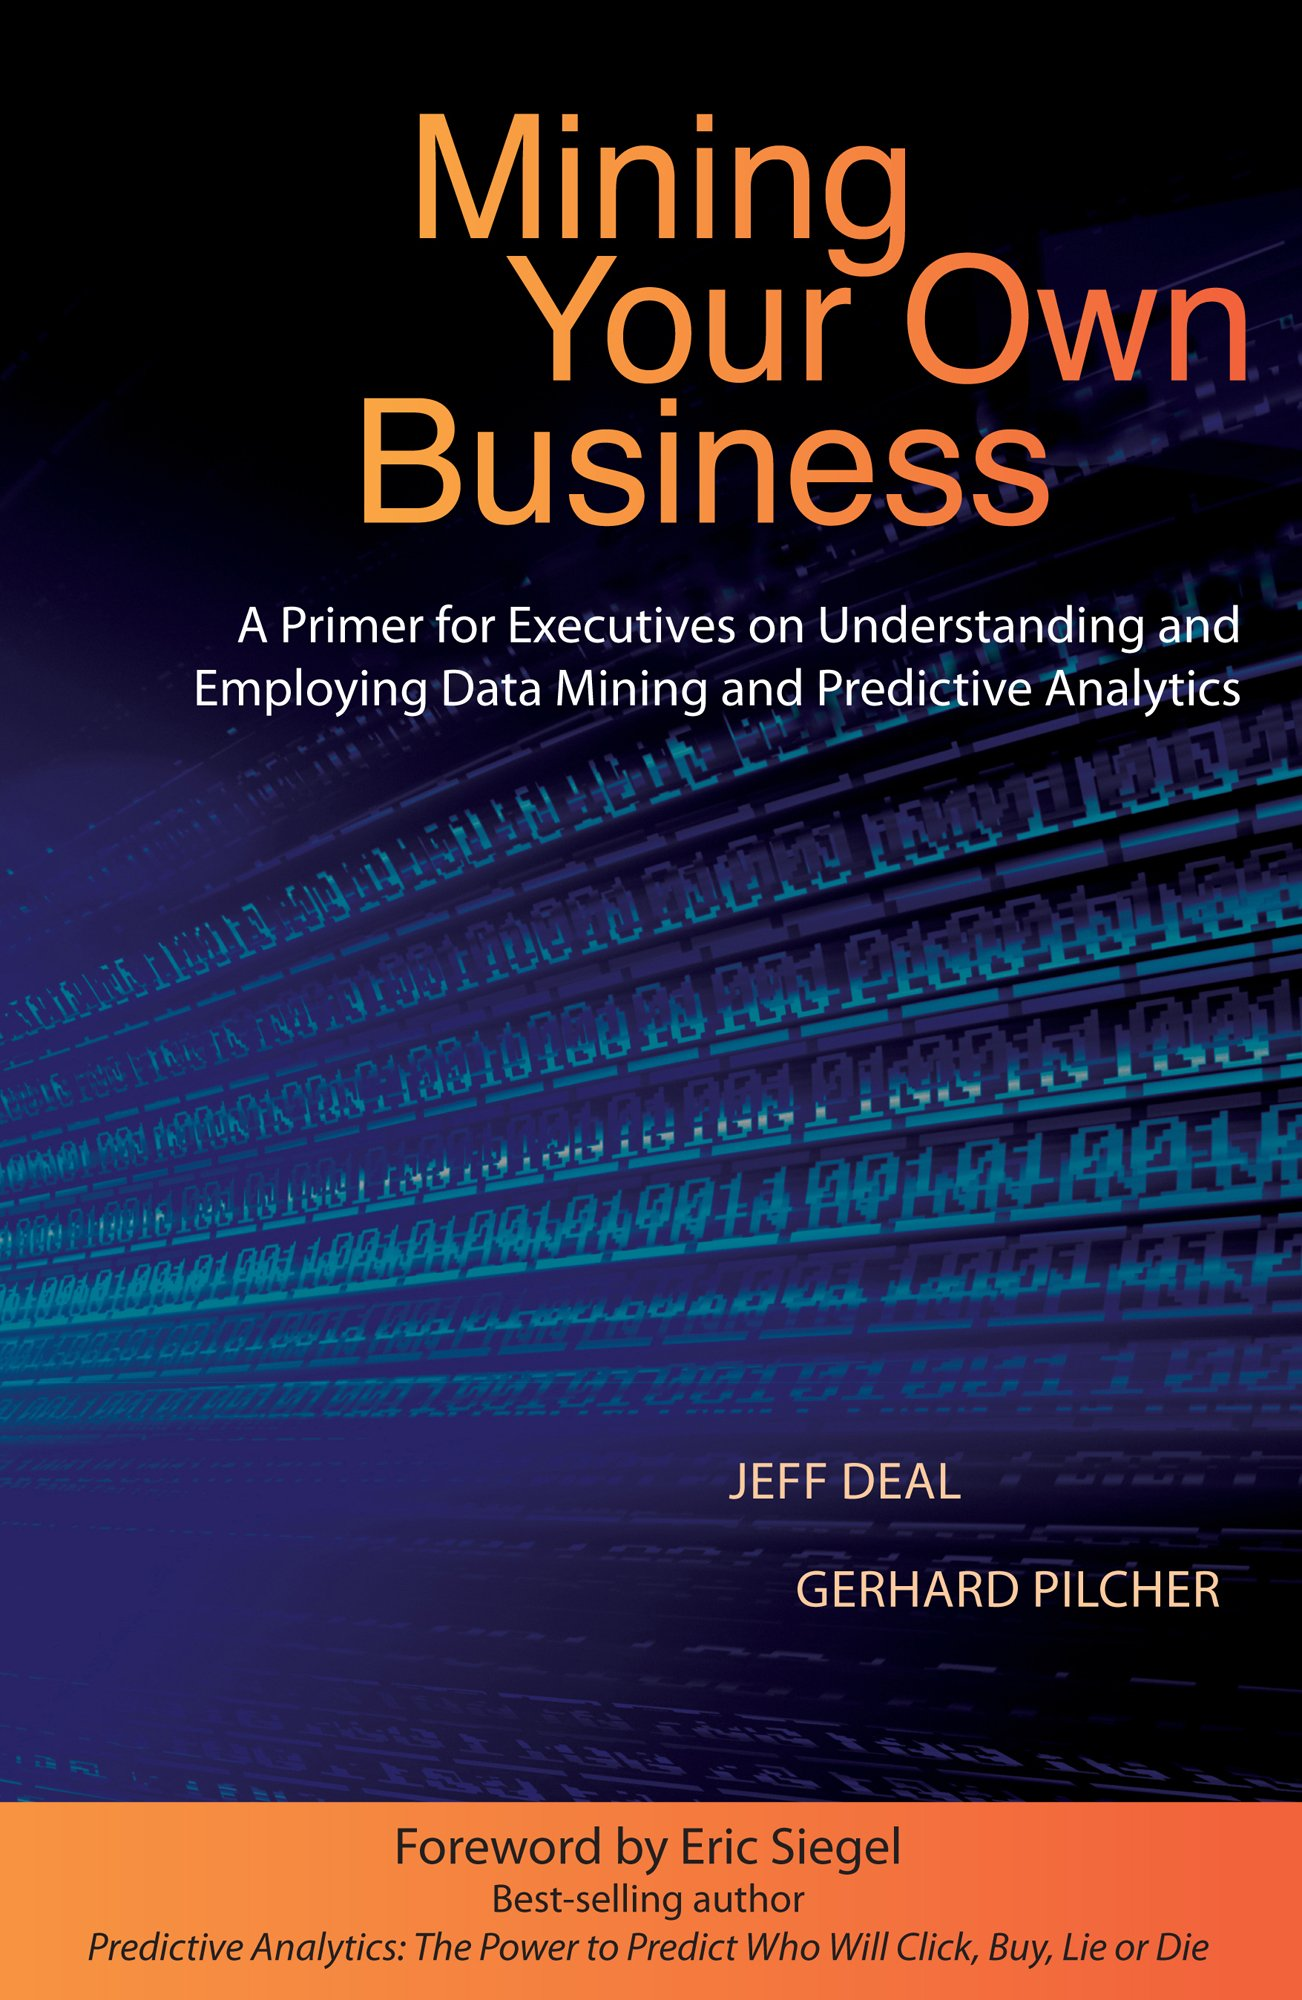 Mining Your Own Business: A Primer for Executives on Understanding and Employing Data Mining and Predictive Analytics PDF